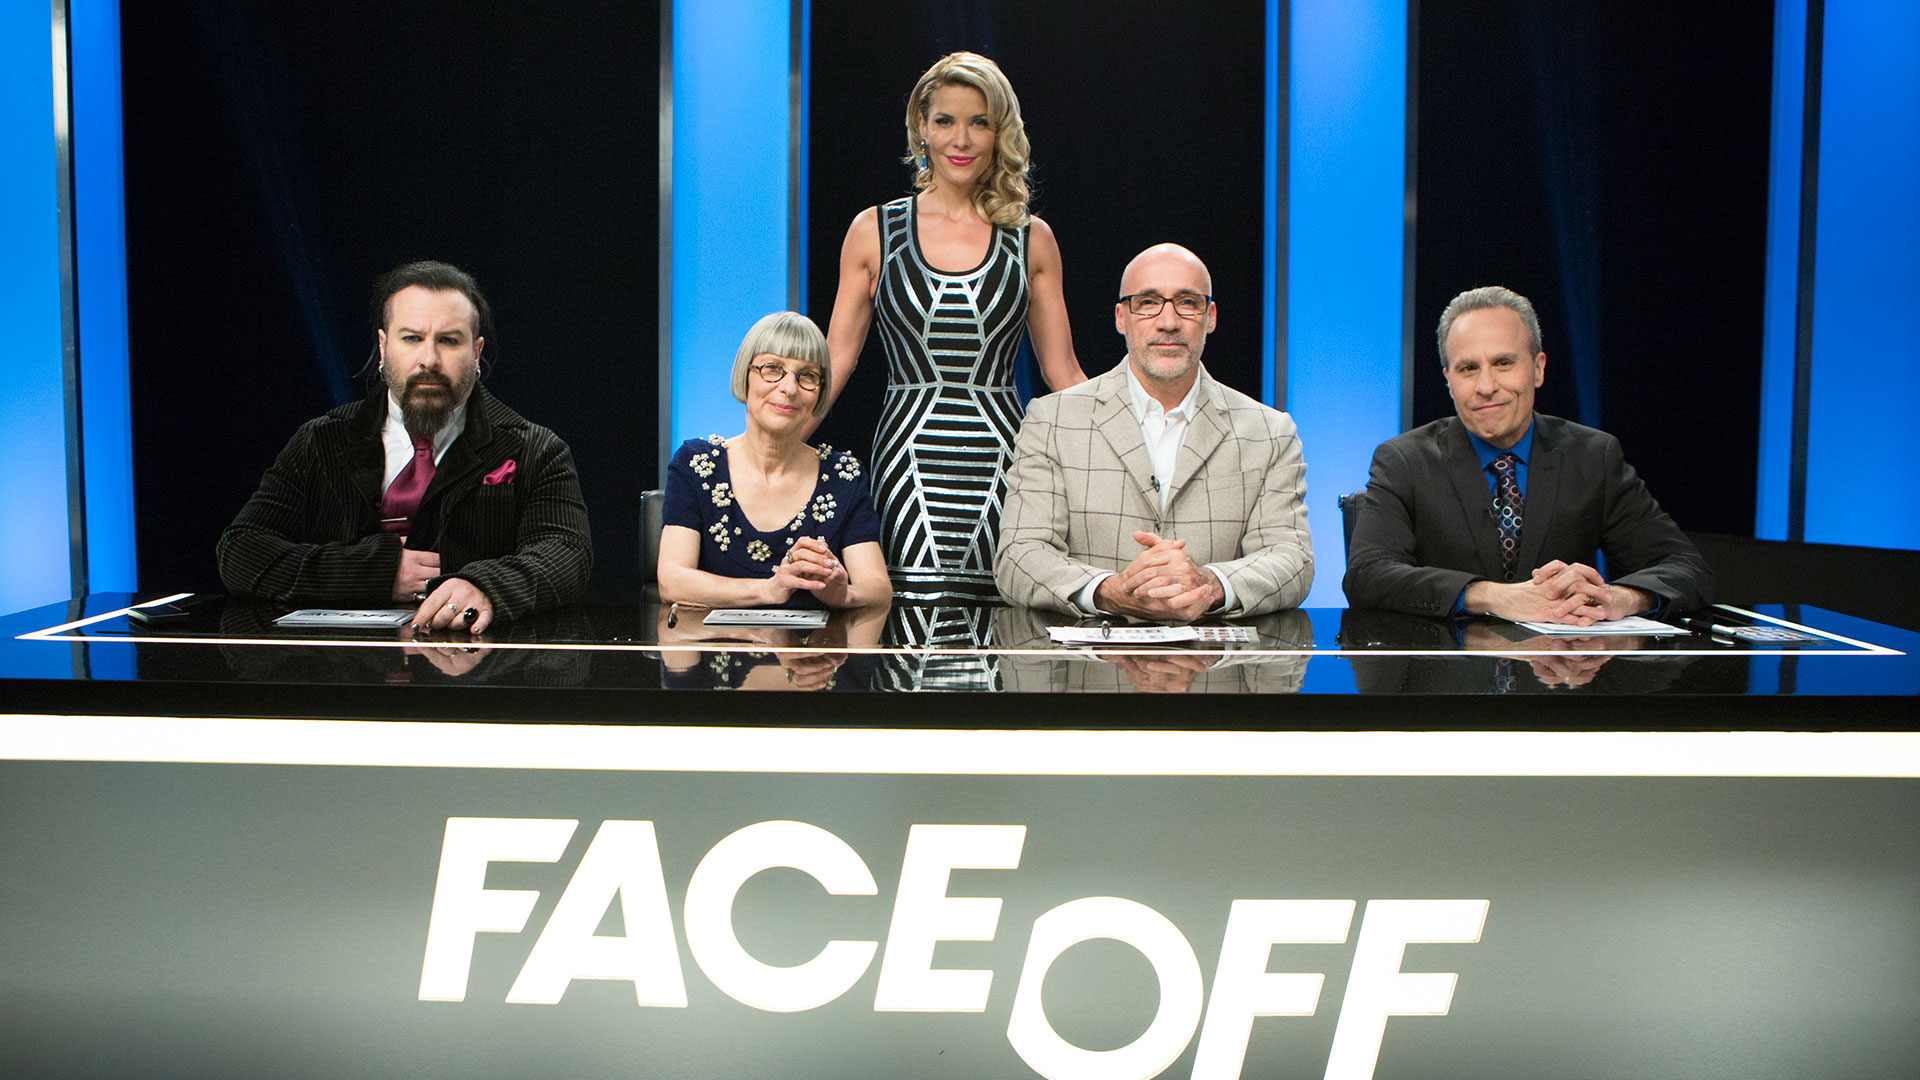 S E Face Off Season 7